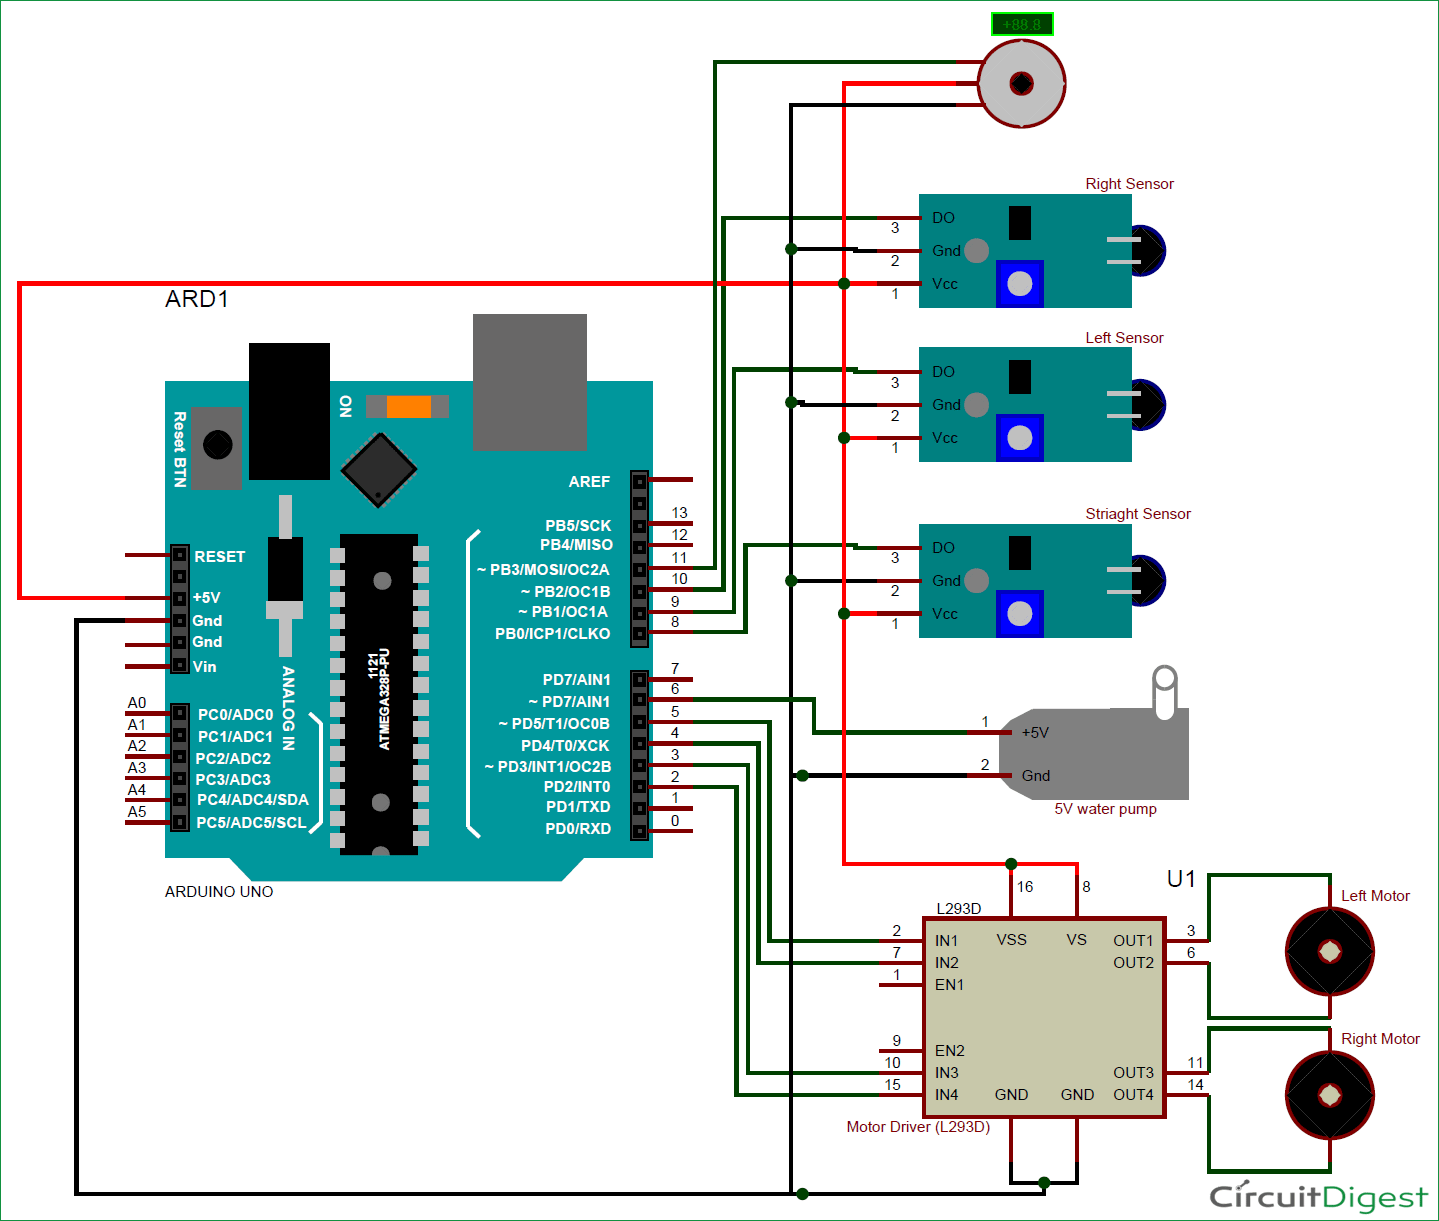 Diy Arduino Based Fire Fighting Robot Project With Code And Circuit Know To Read The Diagrams Start Thinking About Building A Diagram